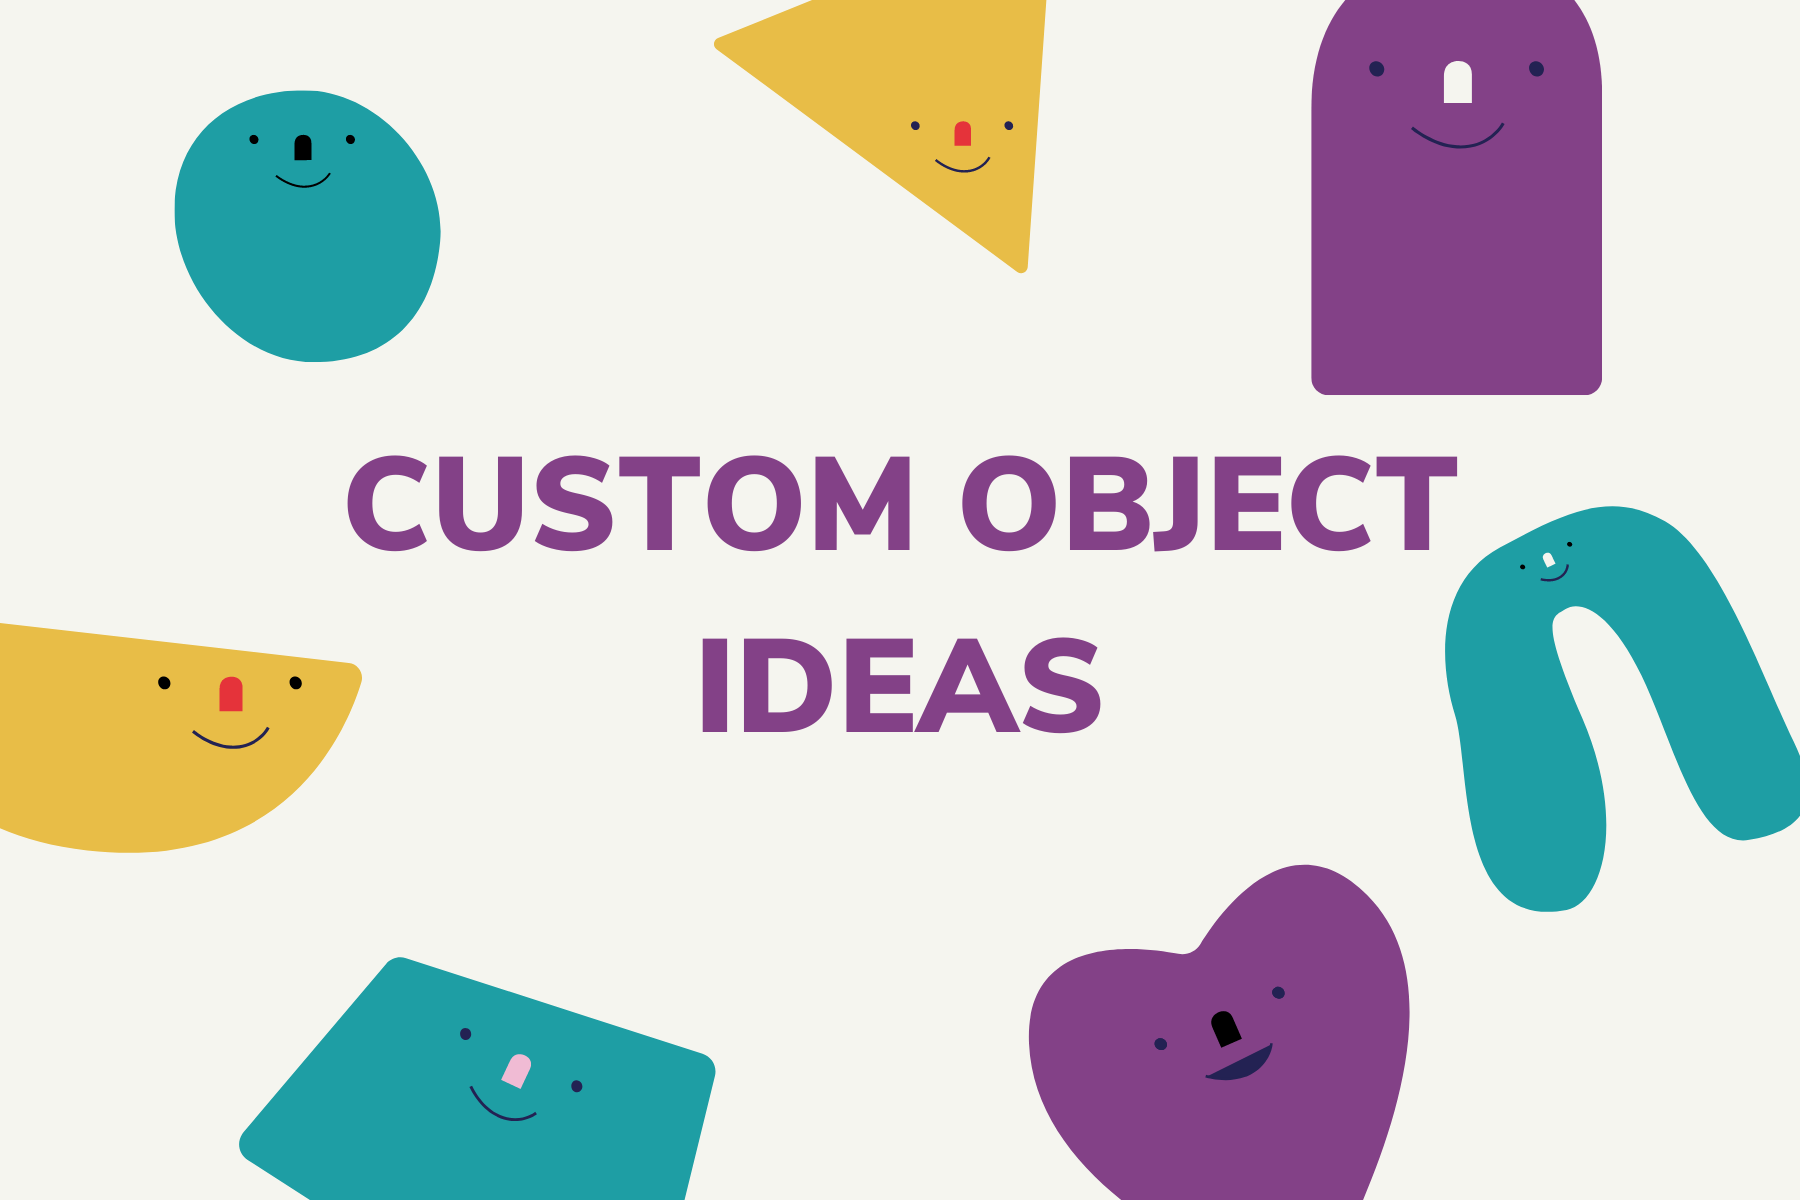 Custom objects ideas for colleges